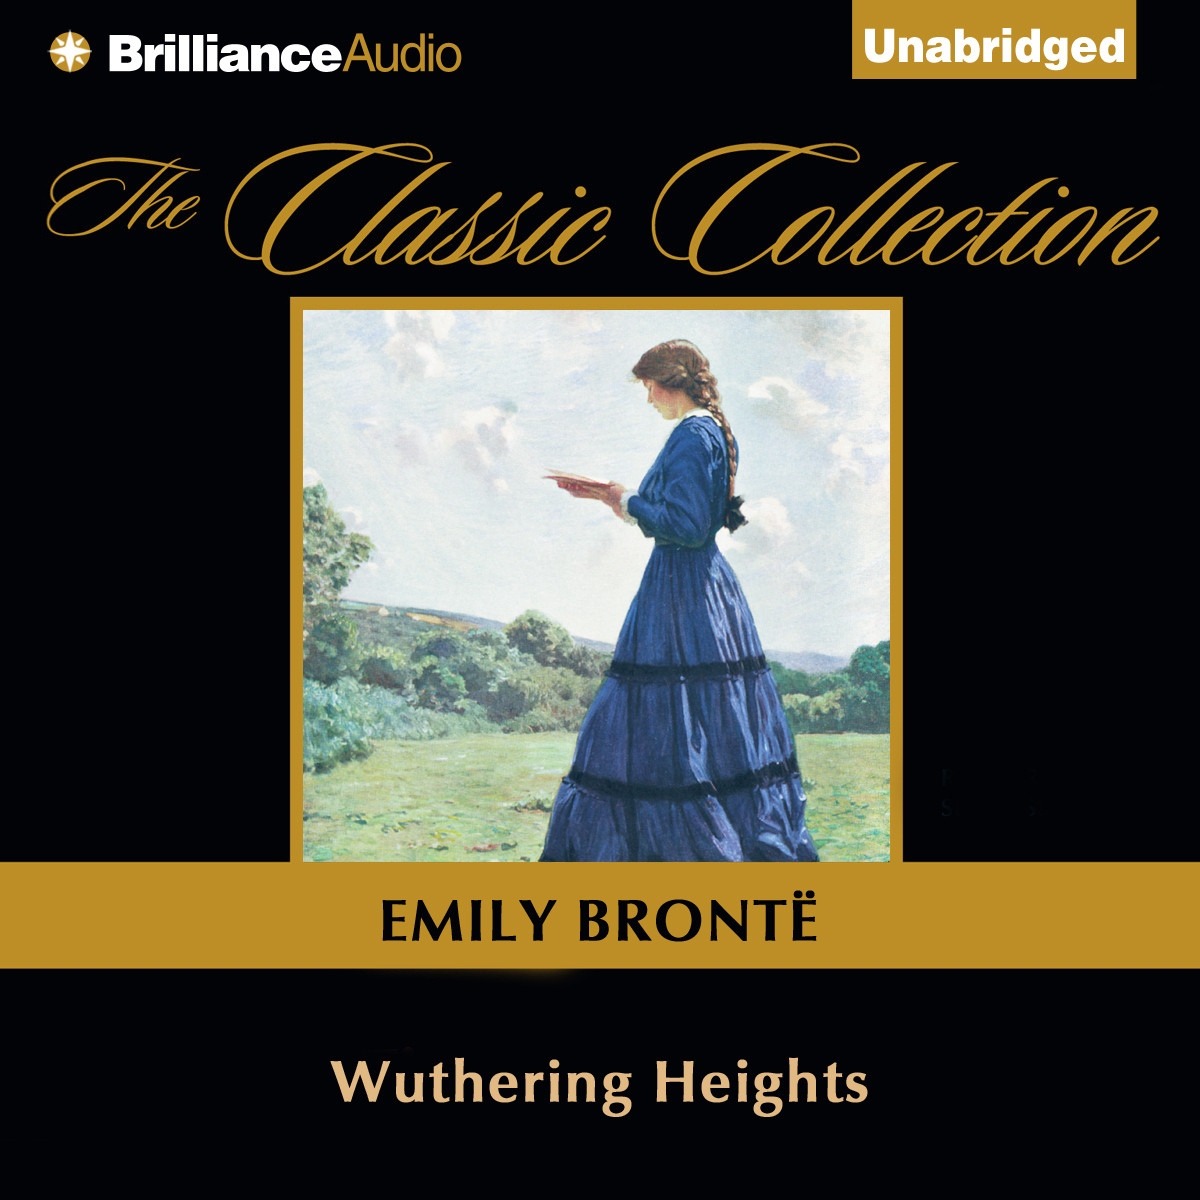 emily bronte wuthering heights ebook download